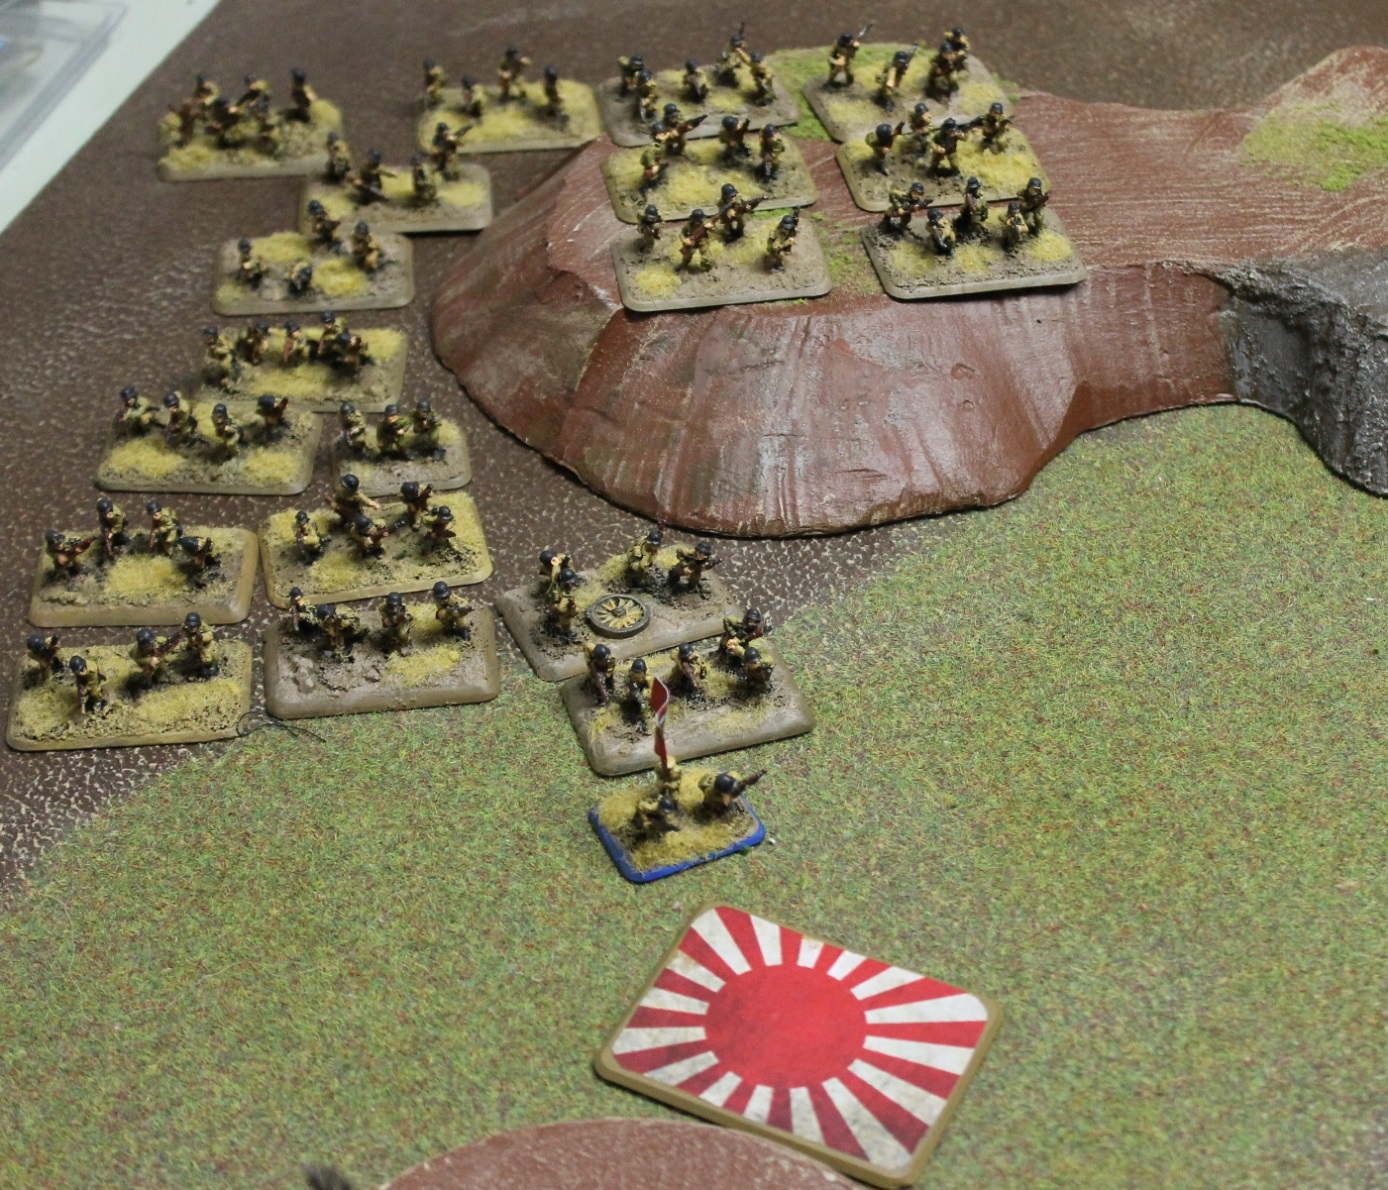 The second Chinese company advances on to the second objective but are machine-gunned before they manage to dig in.